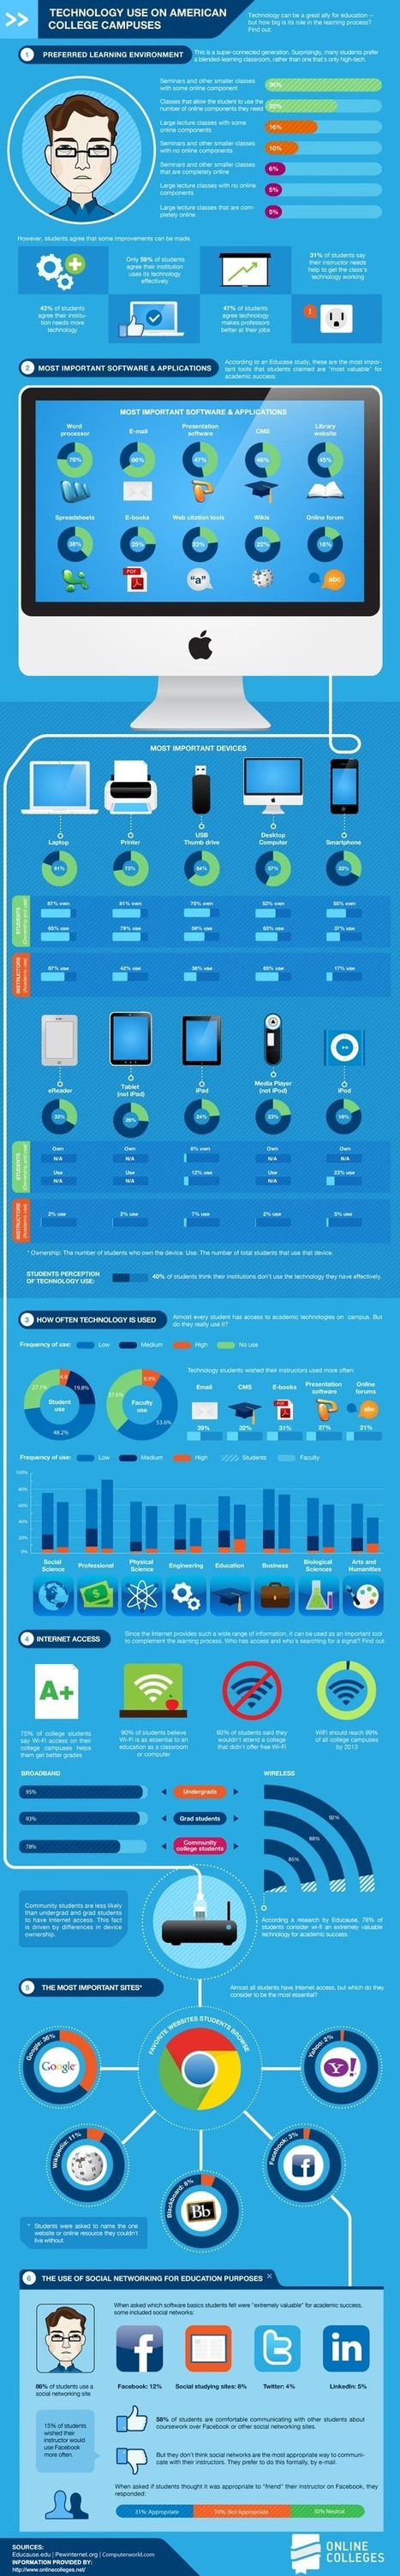 Technology Usage Statistics of University Students [Infographic] | SM | Scoop.it